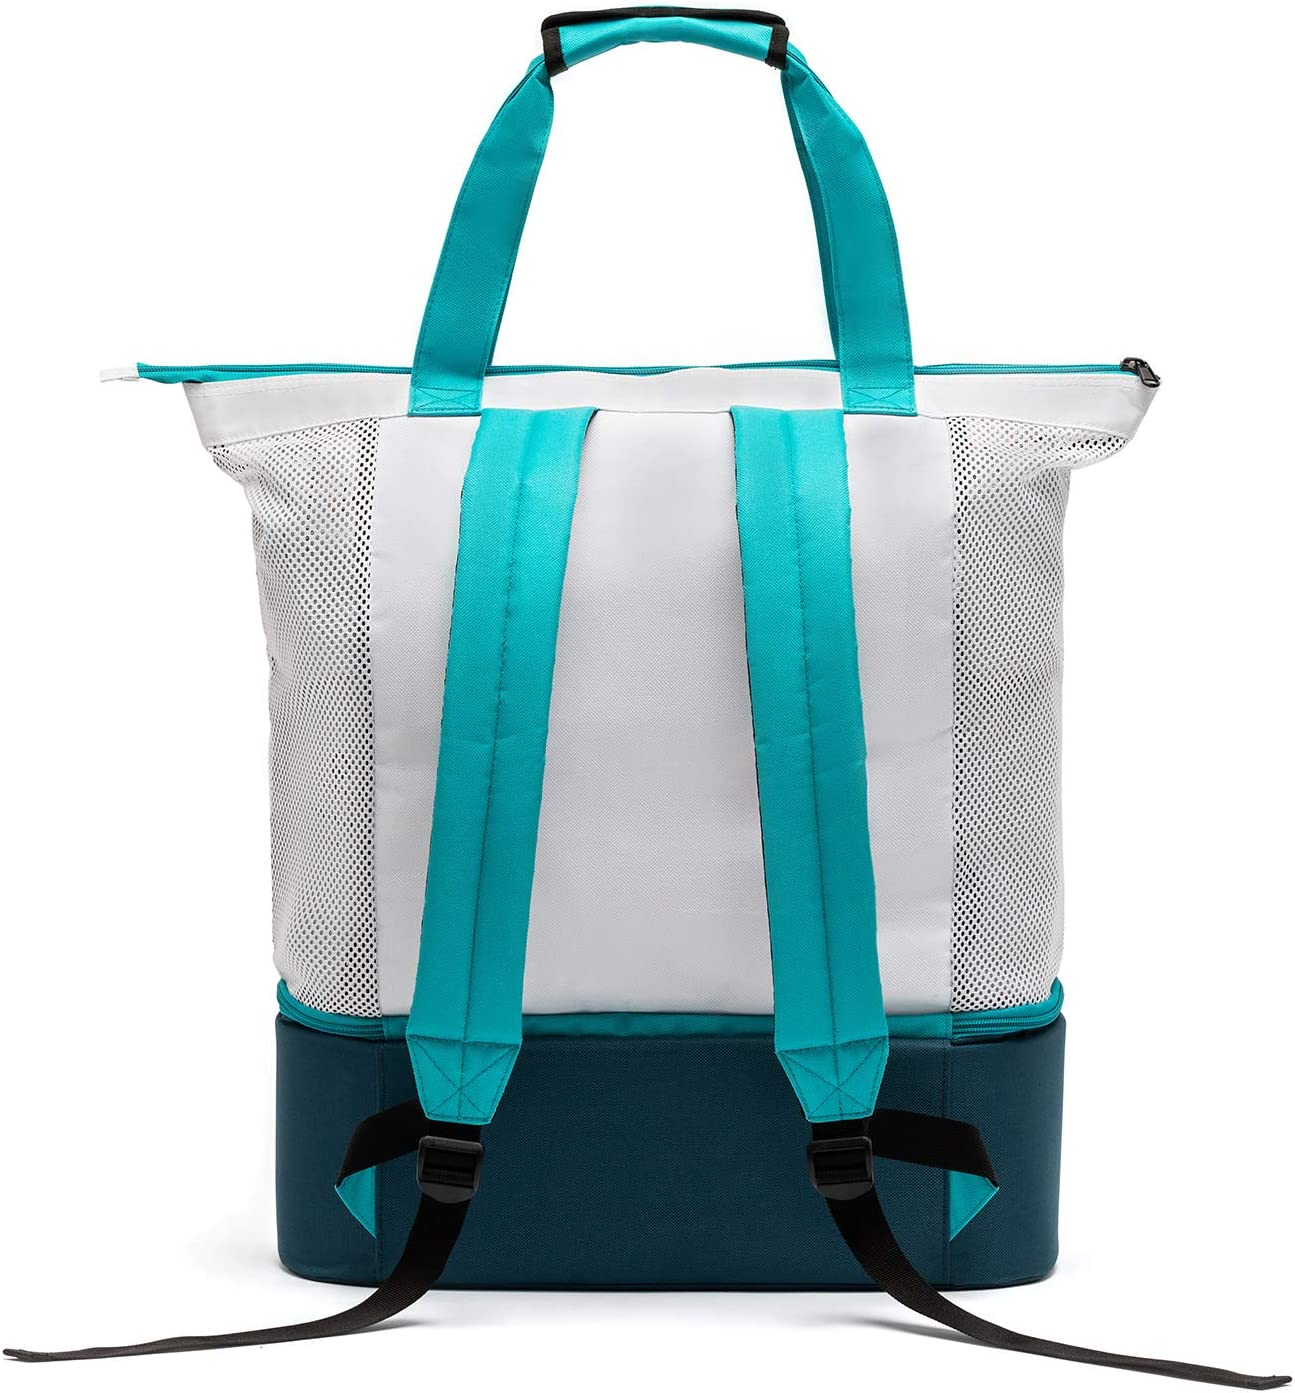 Easthills Outdoors Zipper Top Mesh Beach Tote Bag with Insulated Picnic Cooler, Leak-proof Rigid Bottom Travel Backpack with Adjustable Comfort Padded Shoulder Straps Turquoise Blue